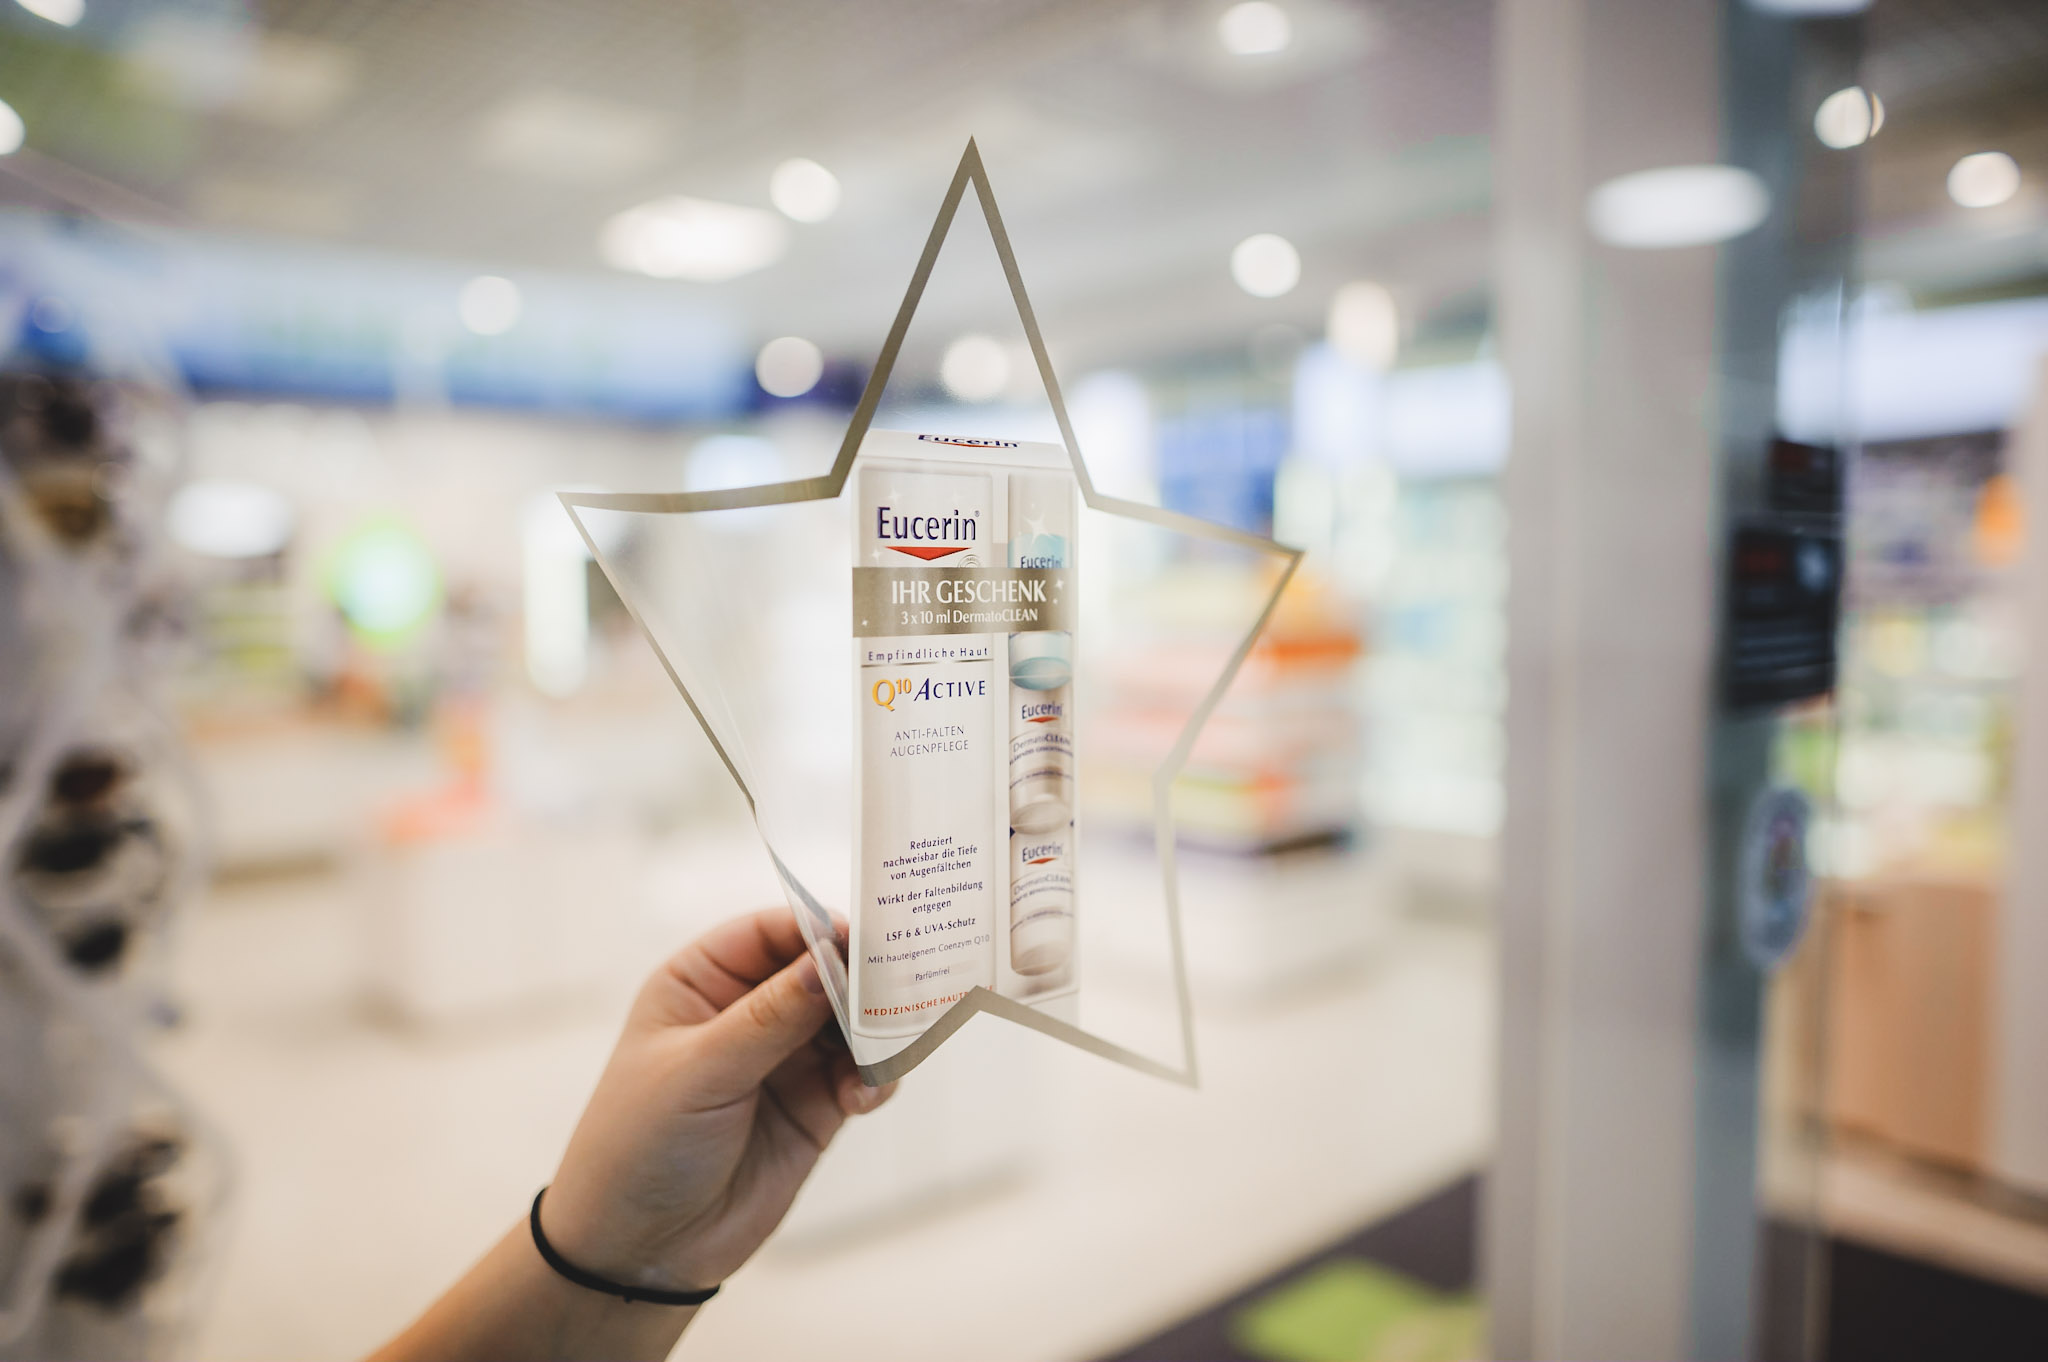 3 reasons why glue-free stickers are the ideal material for advertising in pharmacies